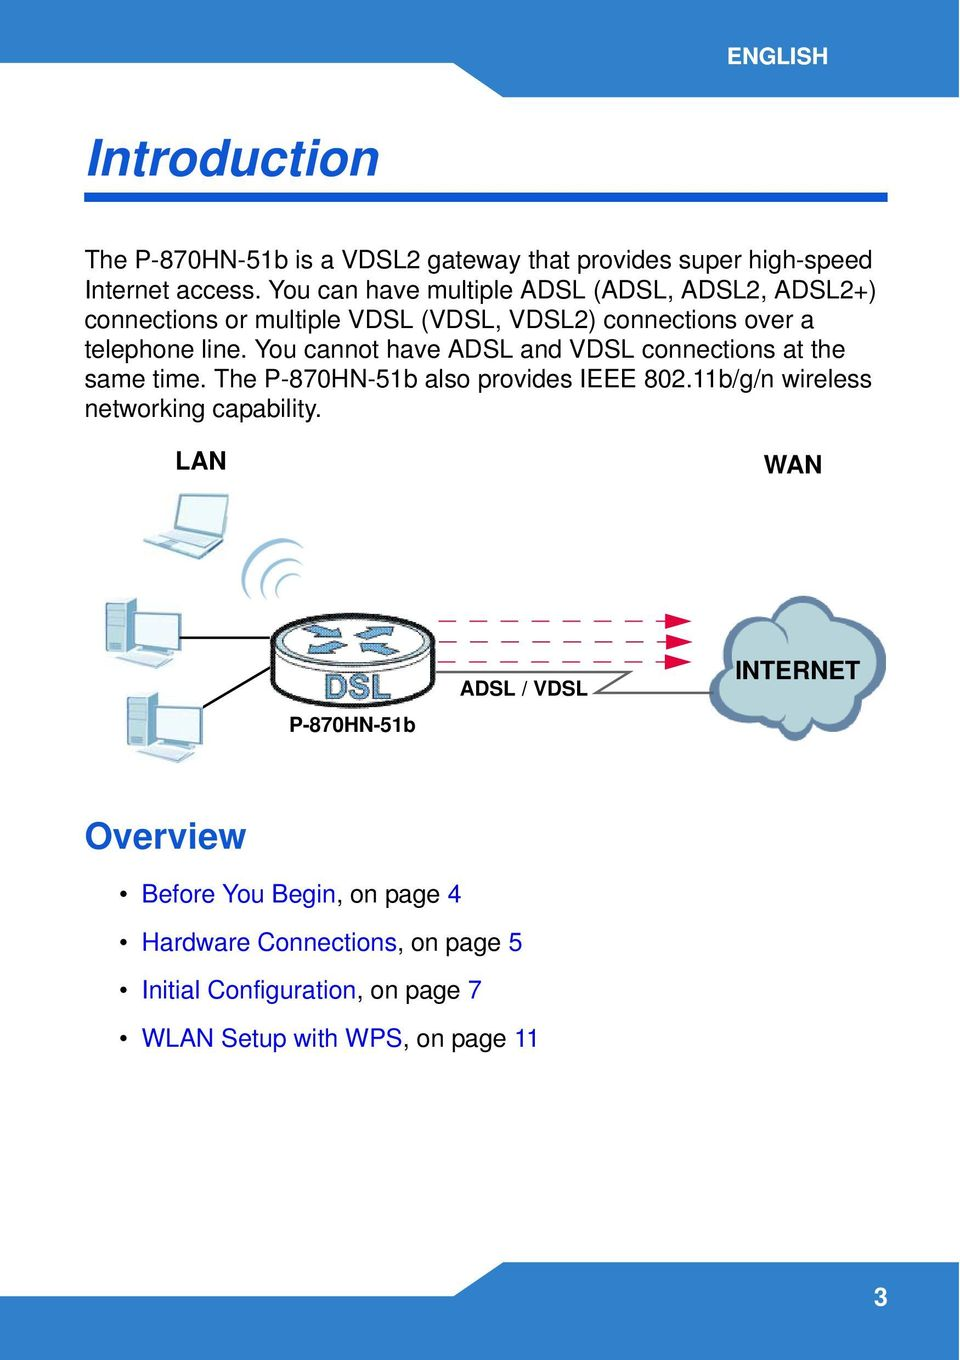 You cannot have ADSL and VDSL connections at the same time. The P-870HN-51b also provides IEEE 802.